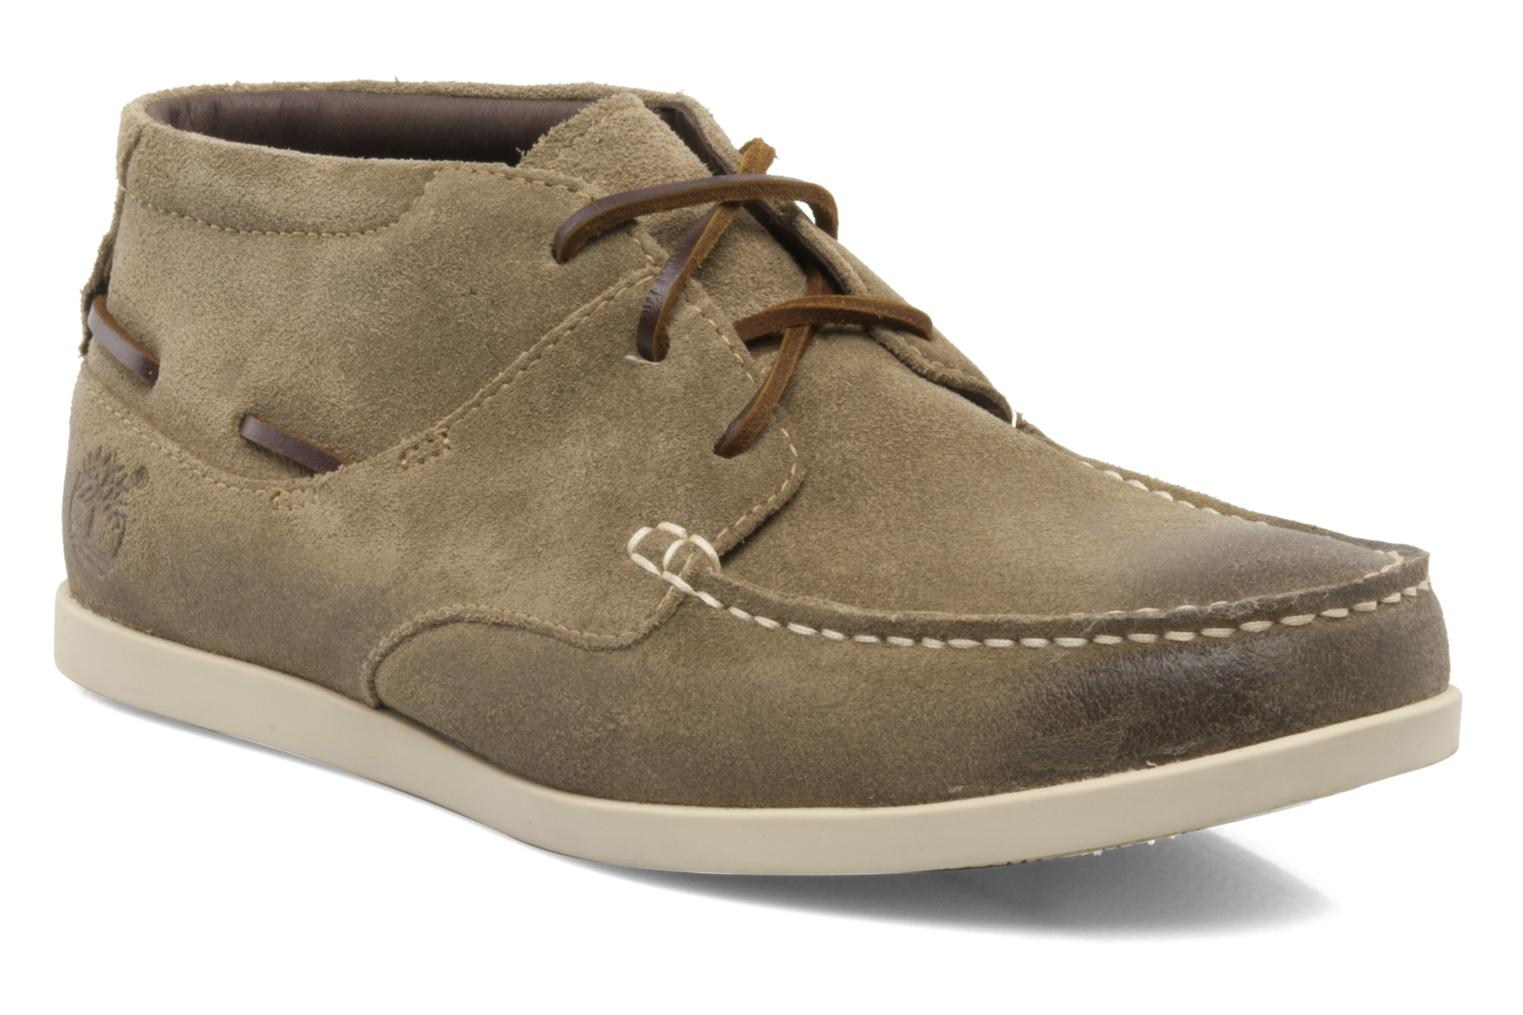 CL 16 Chukka Brown Suede